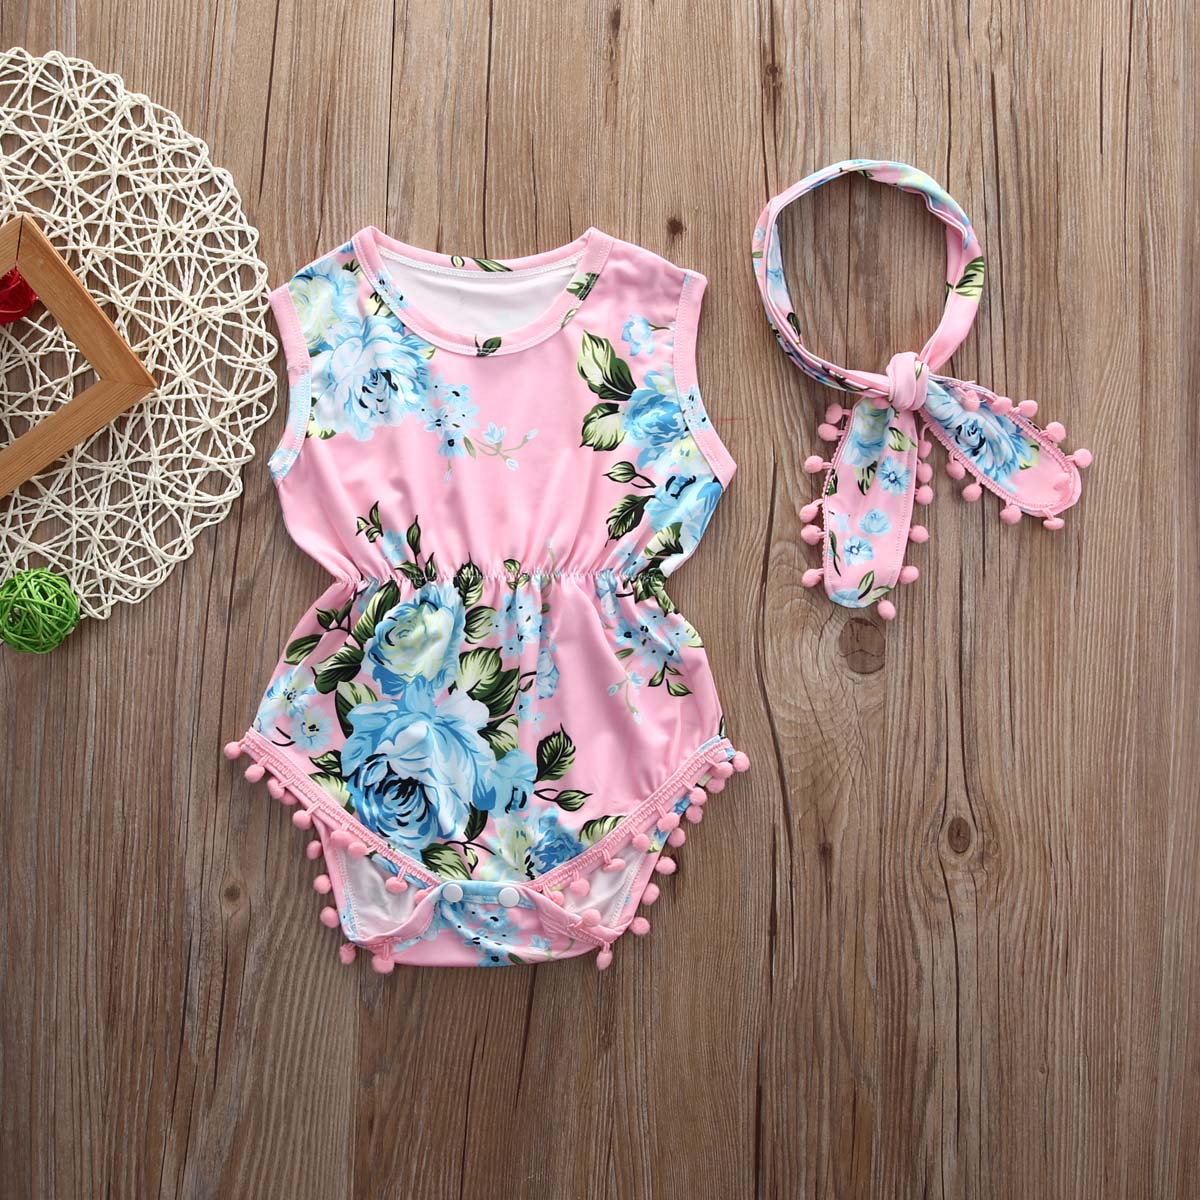 Adorable Newborn Infant Baby Girls Clothes Floral Sleeveless   Romper   Jumpsuit One Piece Sunsuit Clothes Outfits 0-2Y